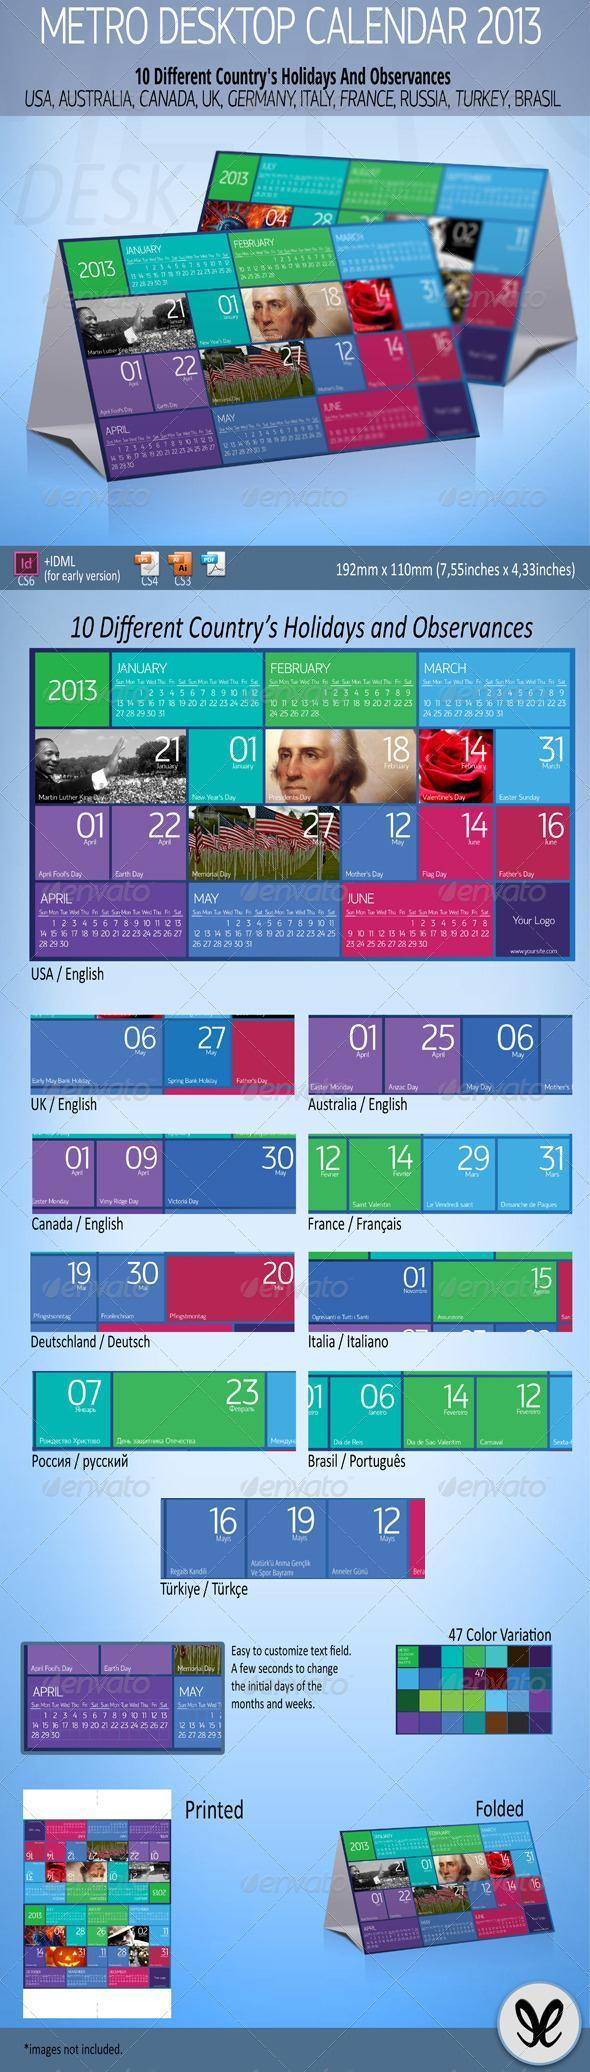 2013 Calendar Printable Template for Company